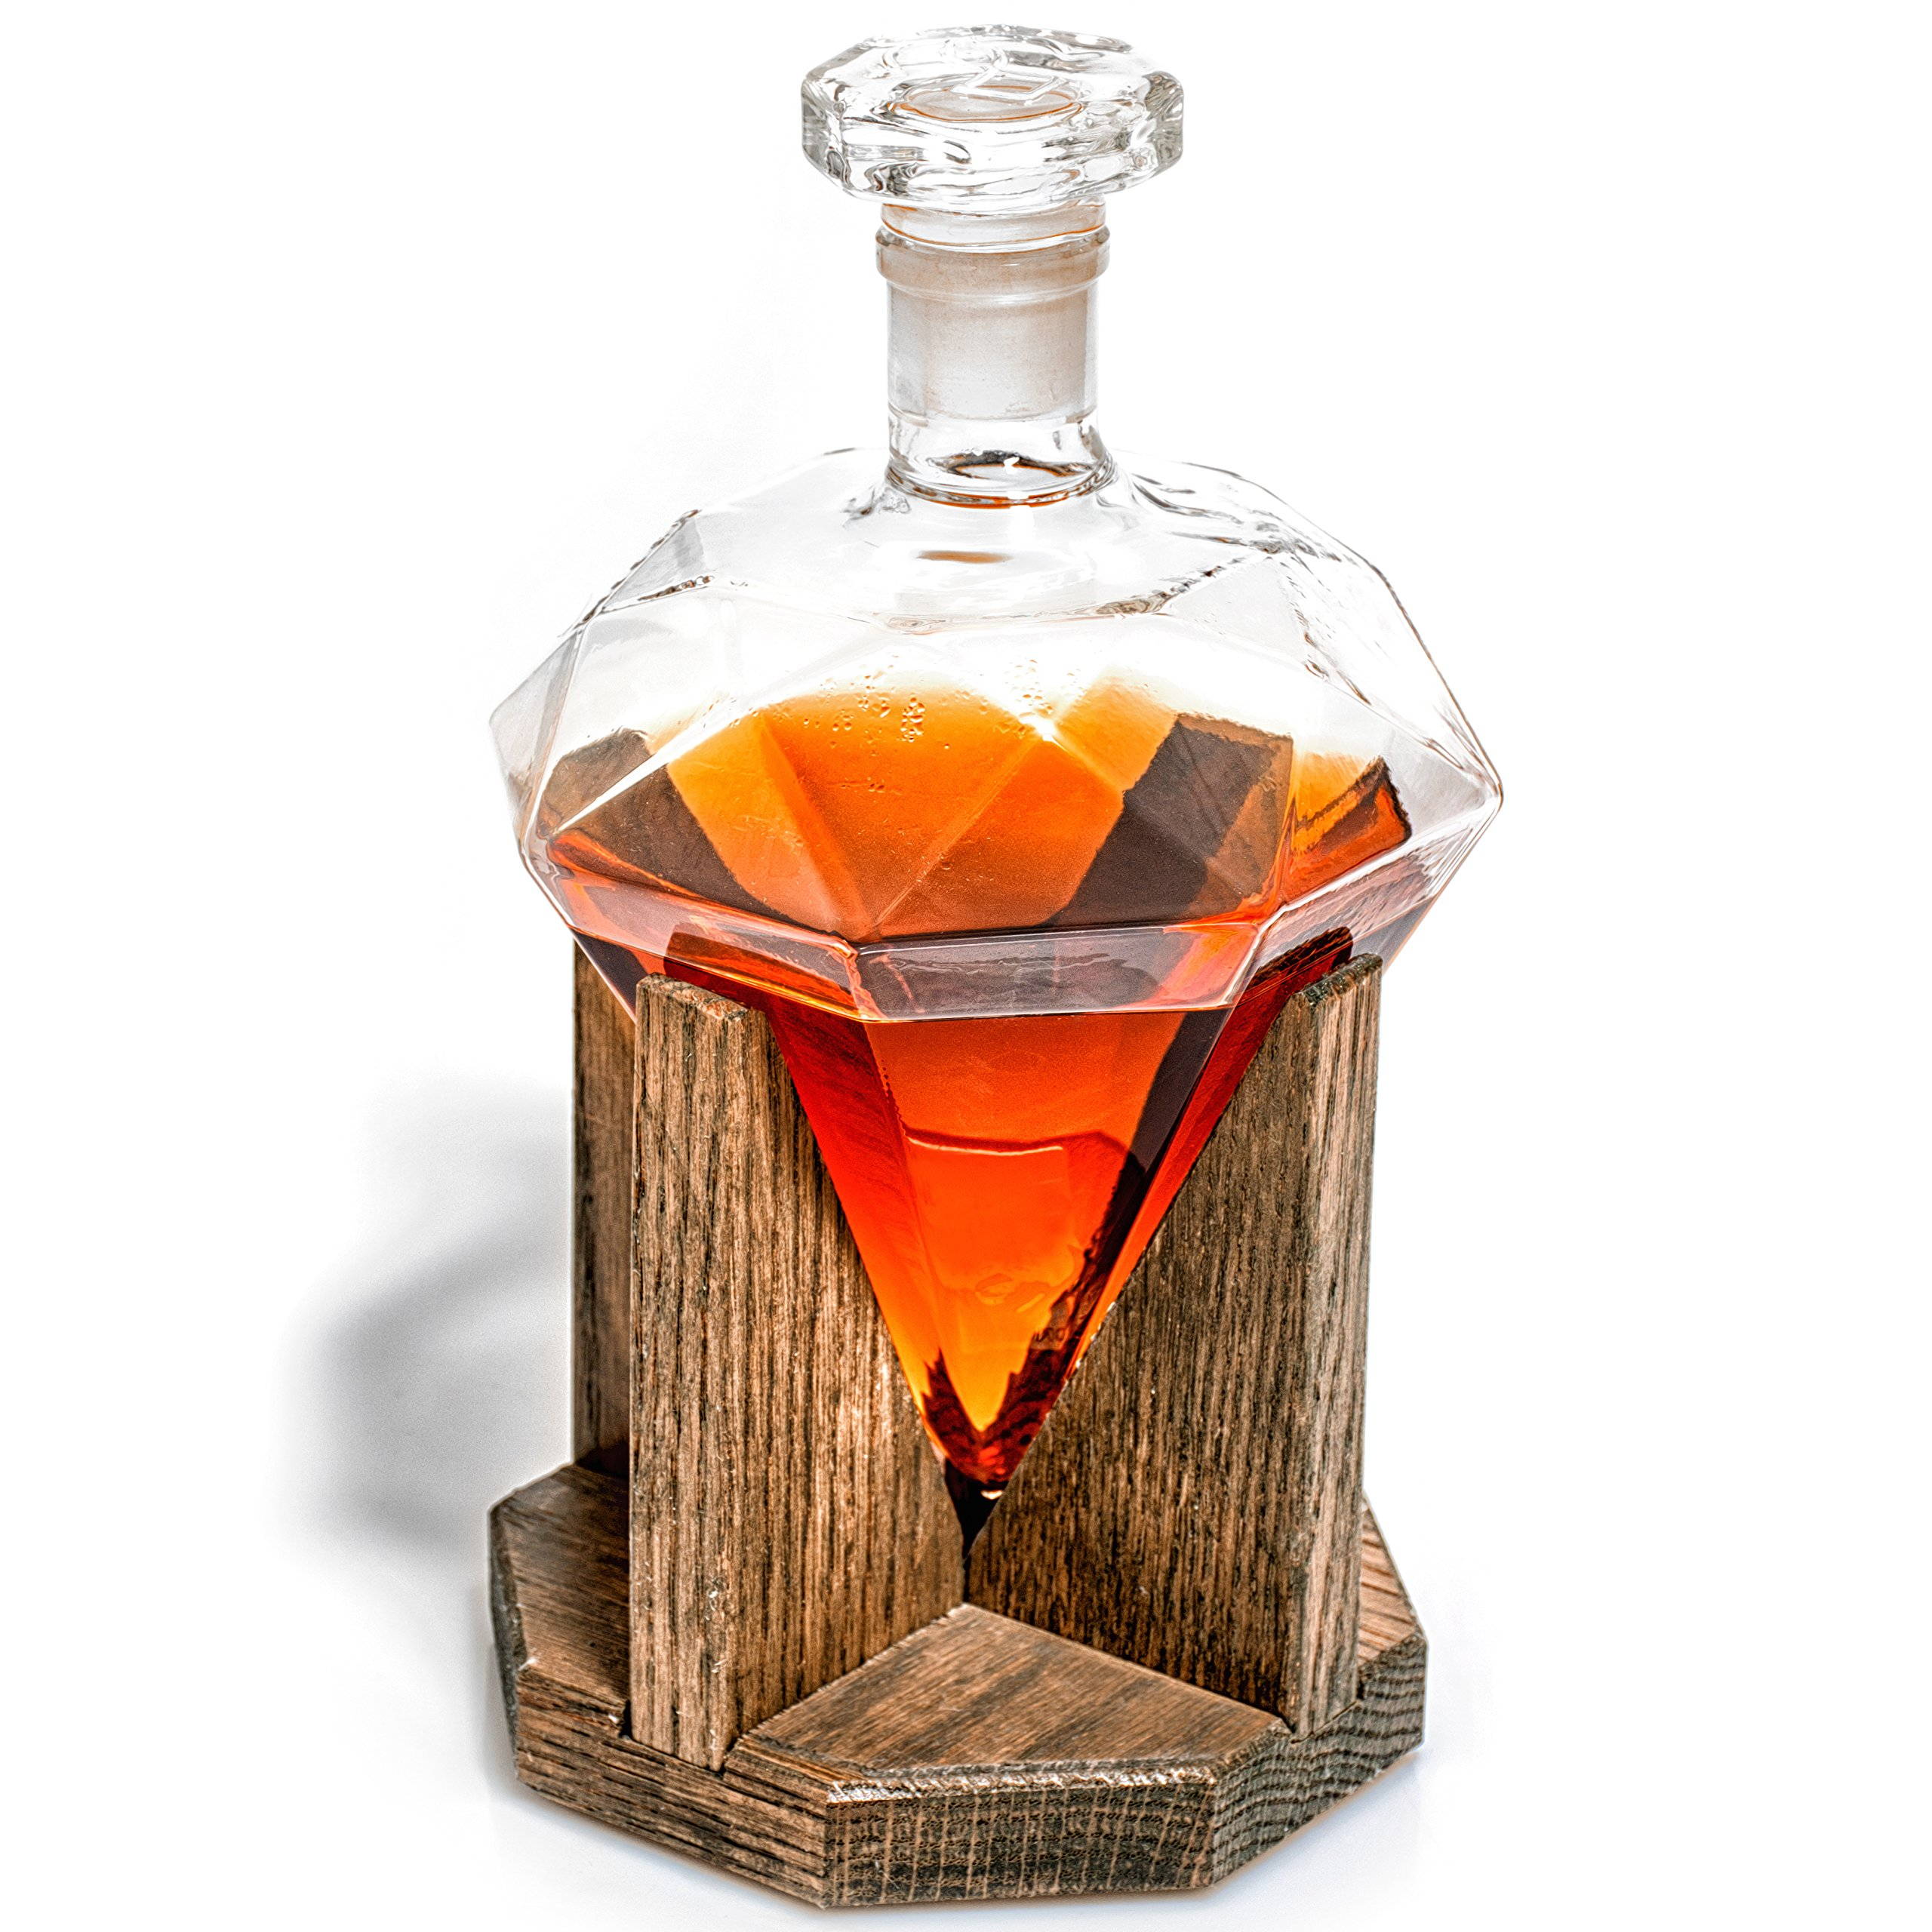 Whiskey Decanter - Newlywed Gift Diamond Decanters for Alcohol, Rum, Bourbon, Scotch, Wine Decanter - Diamond 10 Year Anniversary Gift or Groomsmen Gifts - 1000ml Liquor Decanter (Prestige Decanters) by Prestige Decanters